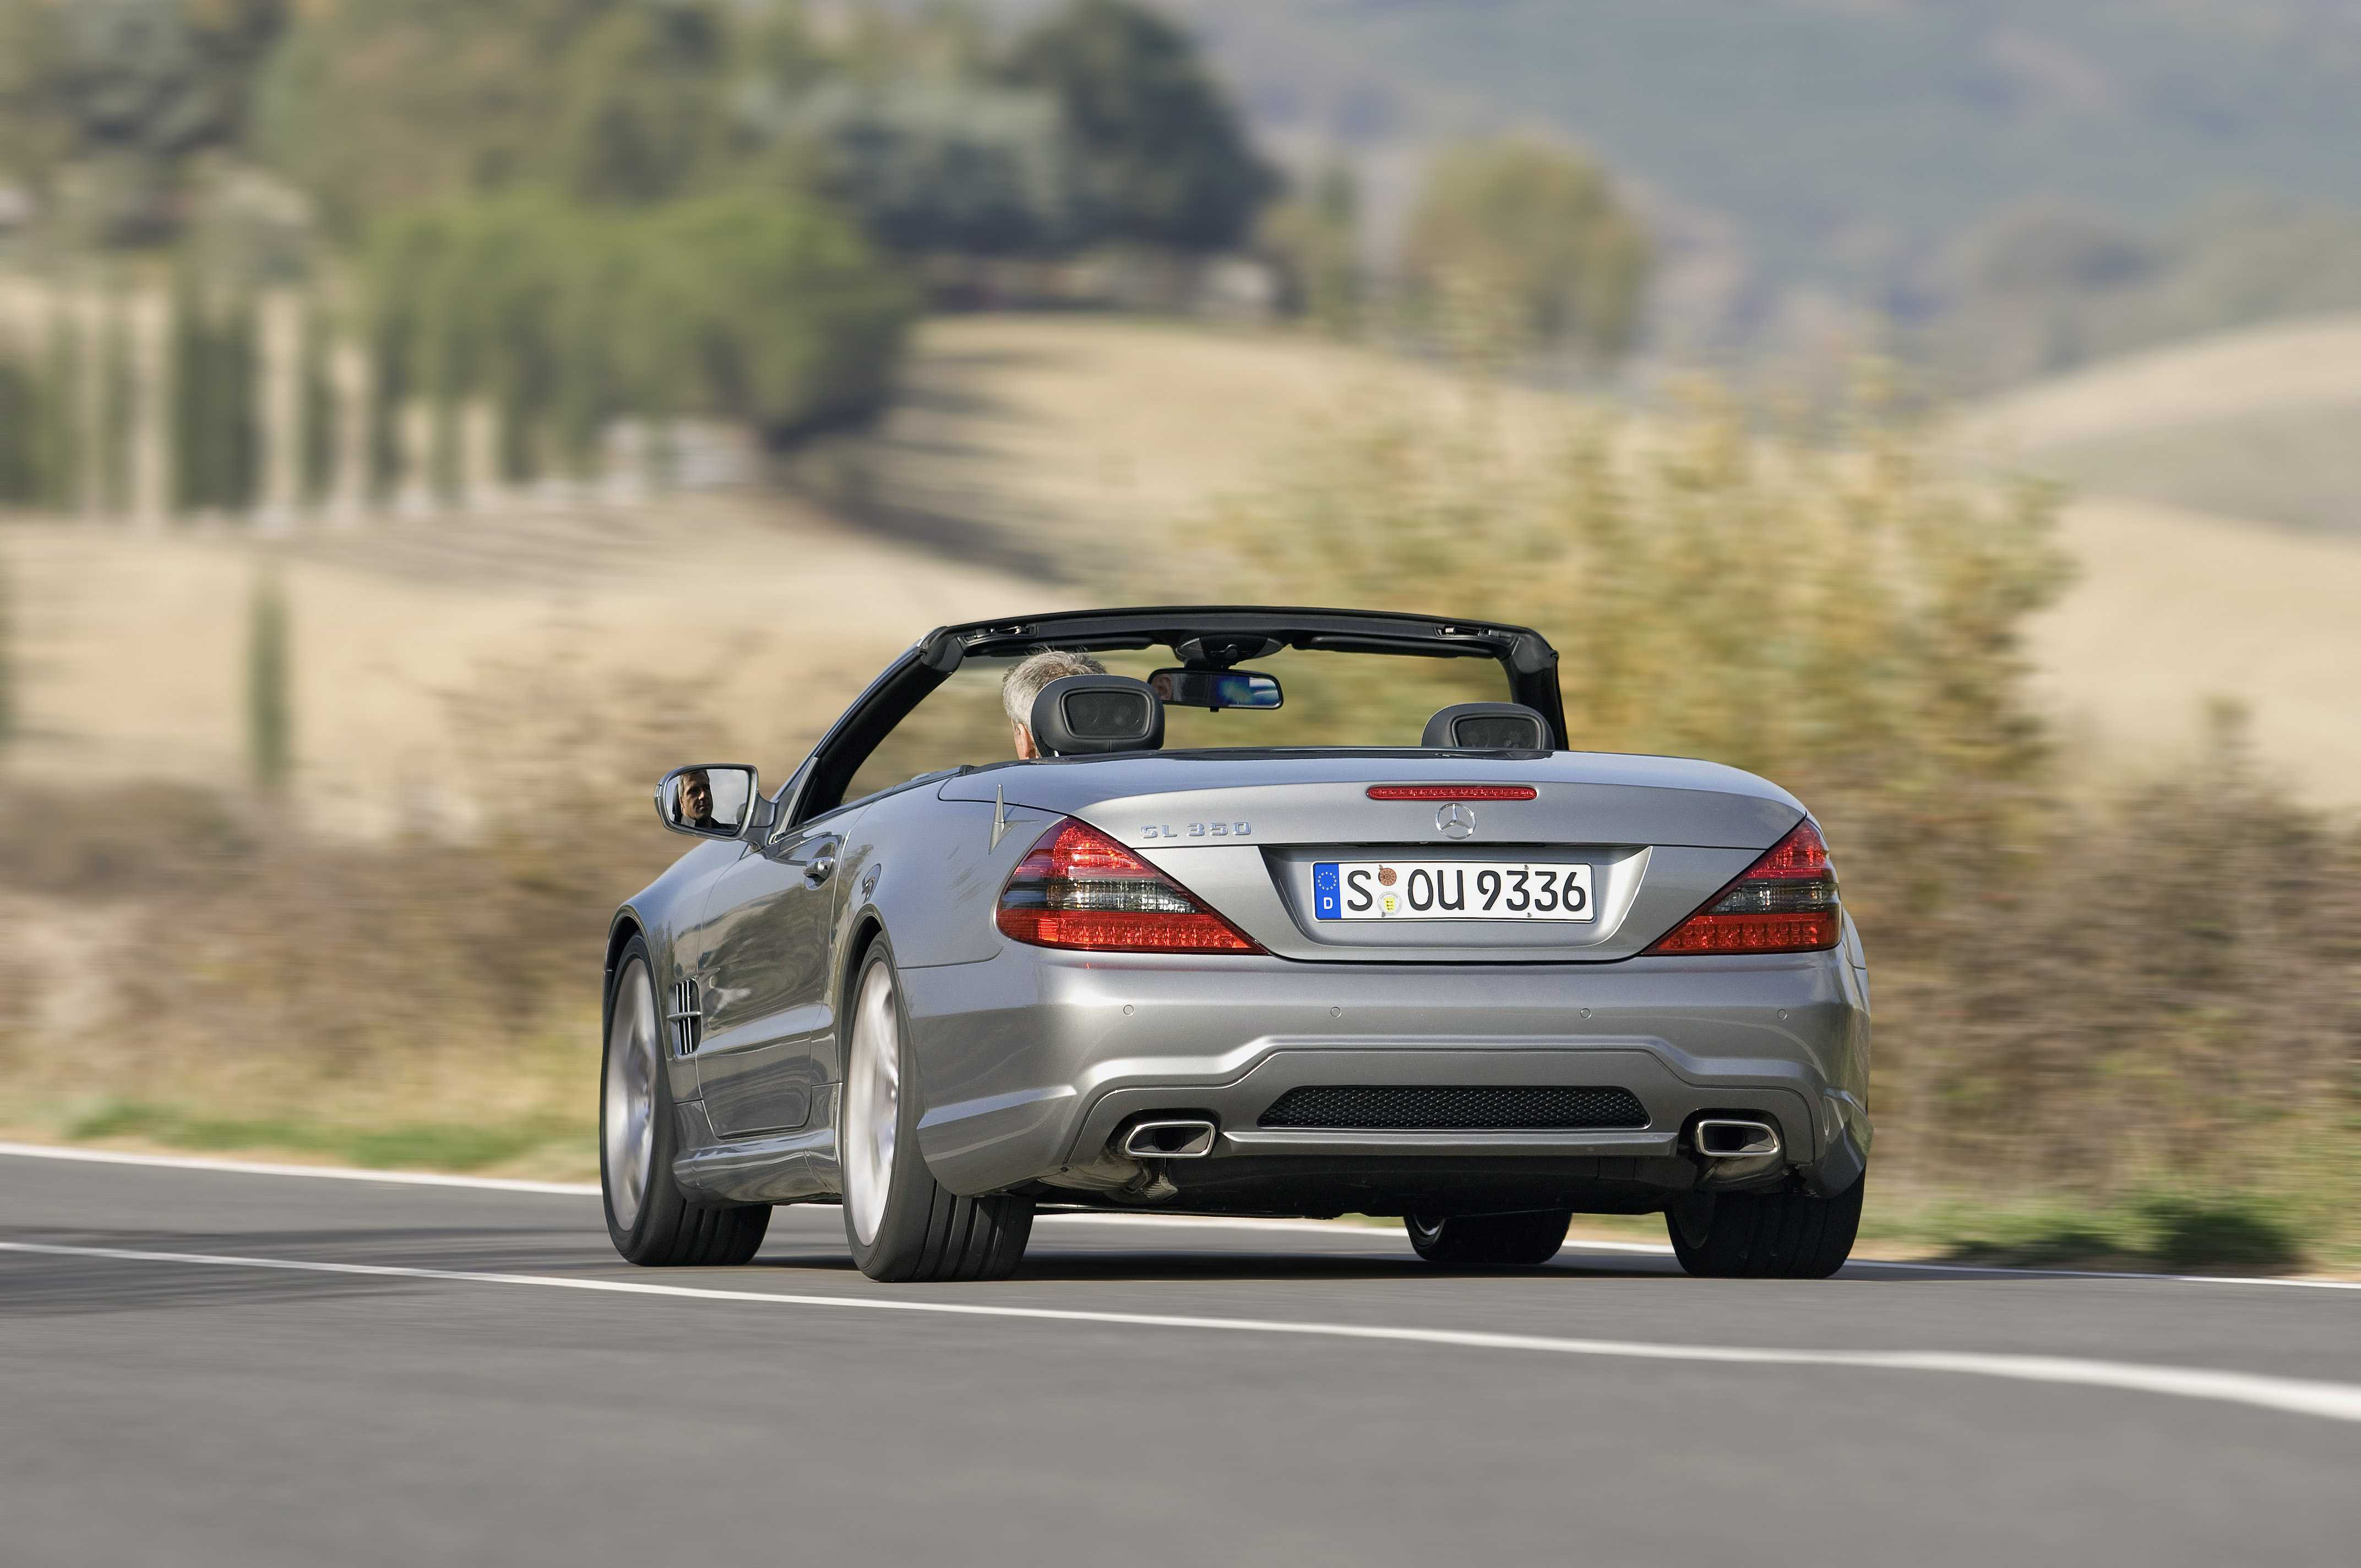 Automotive area 2011 mercedes benz sl r230 - Automotive Area 2011 Mercedes Benz Sl R230 45